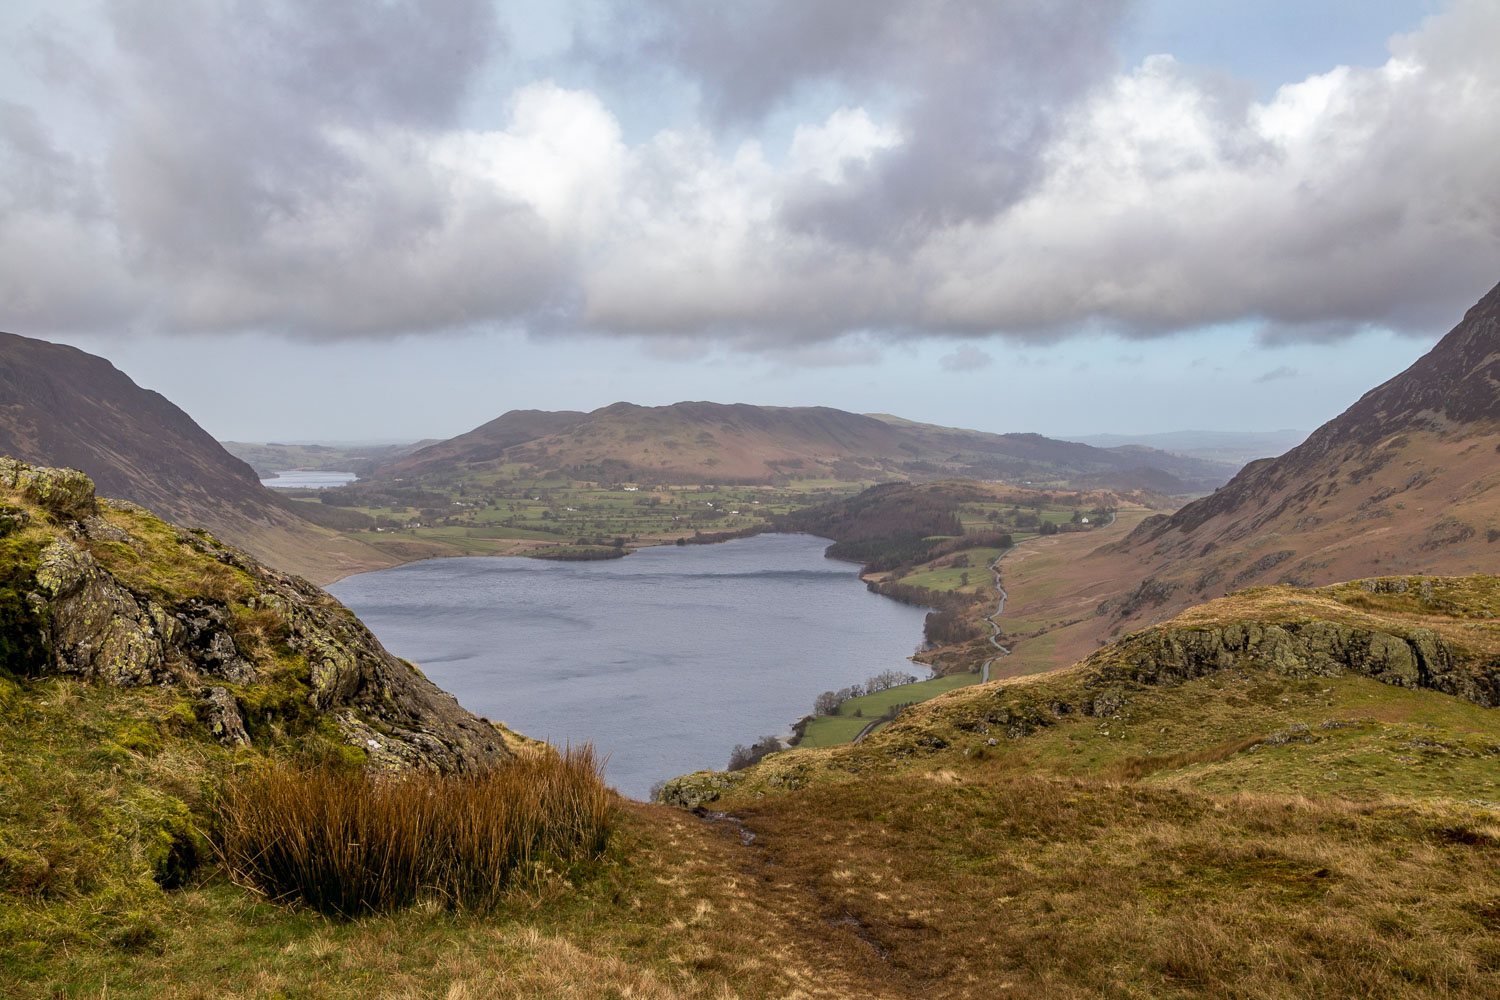 Rannerdale Knotts summit